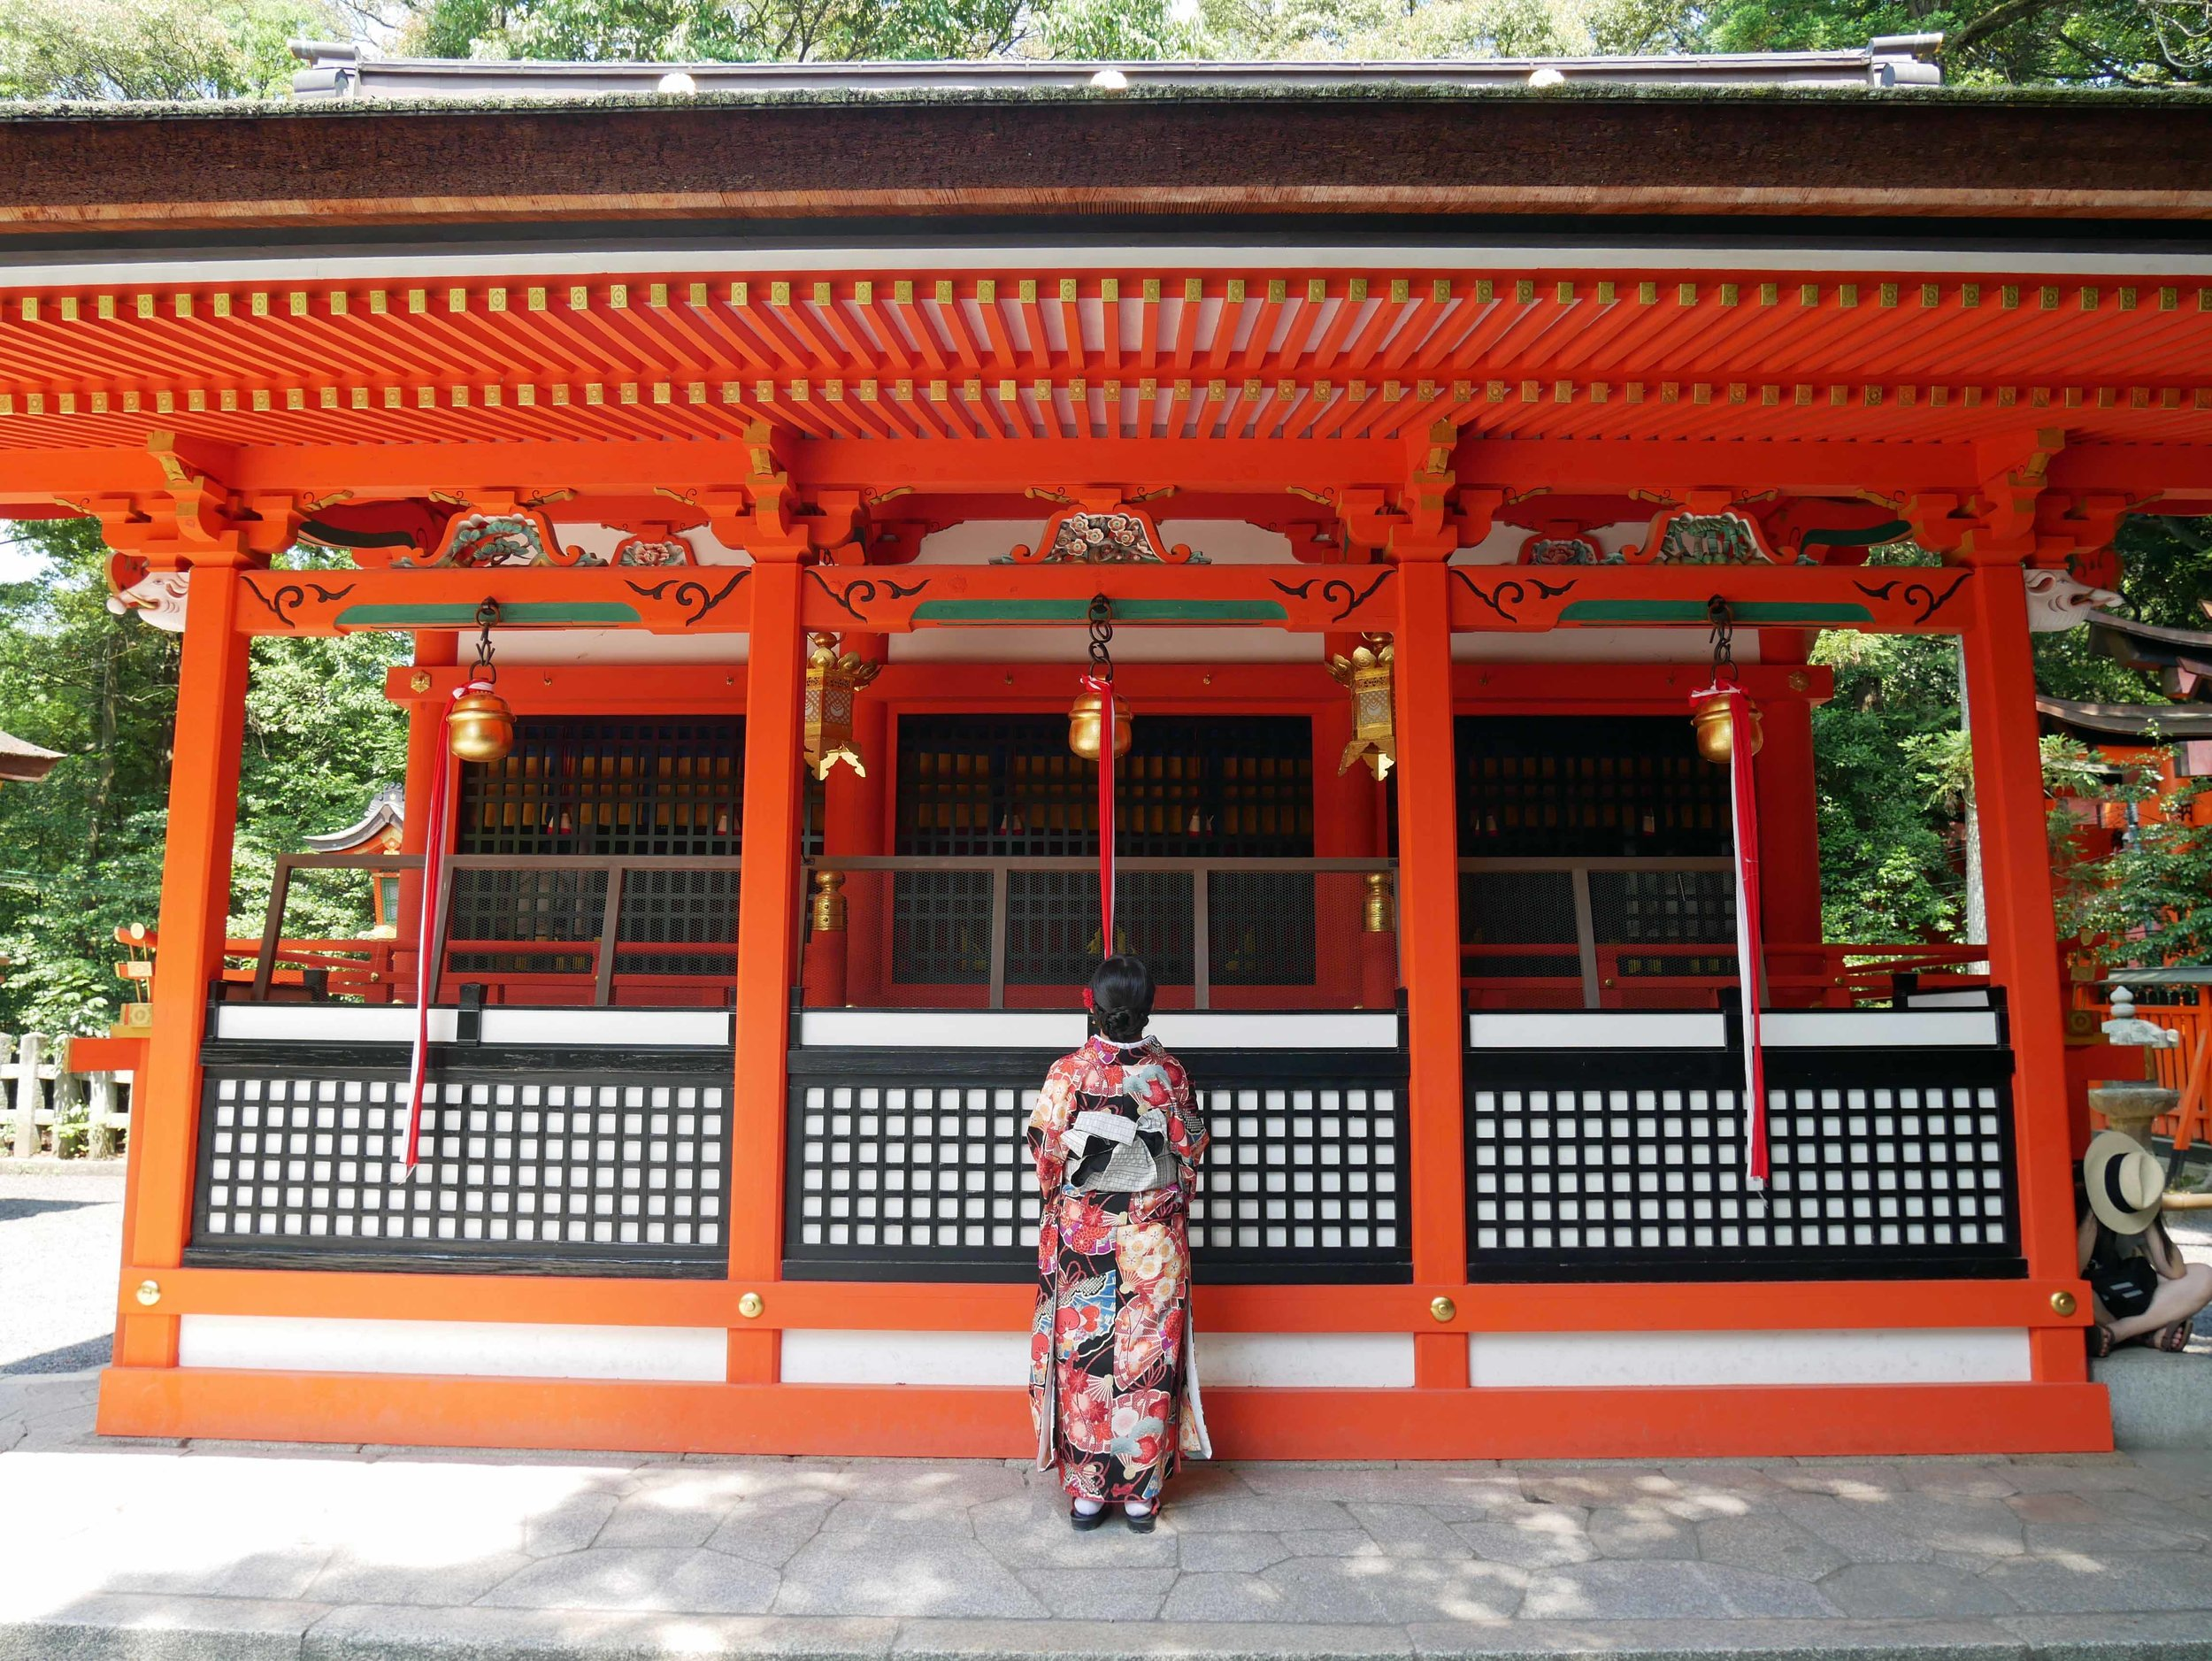 A Japanese woman makes an offering and prayer at one of the many shrines within the complex.